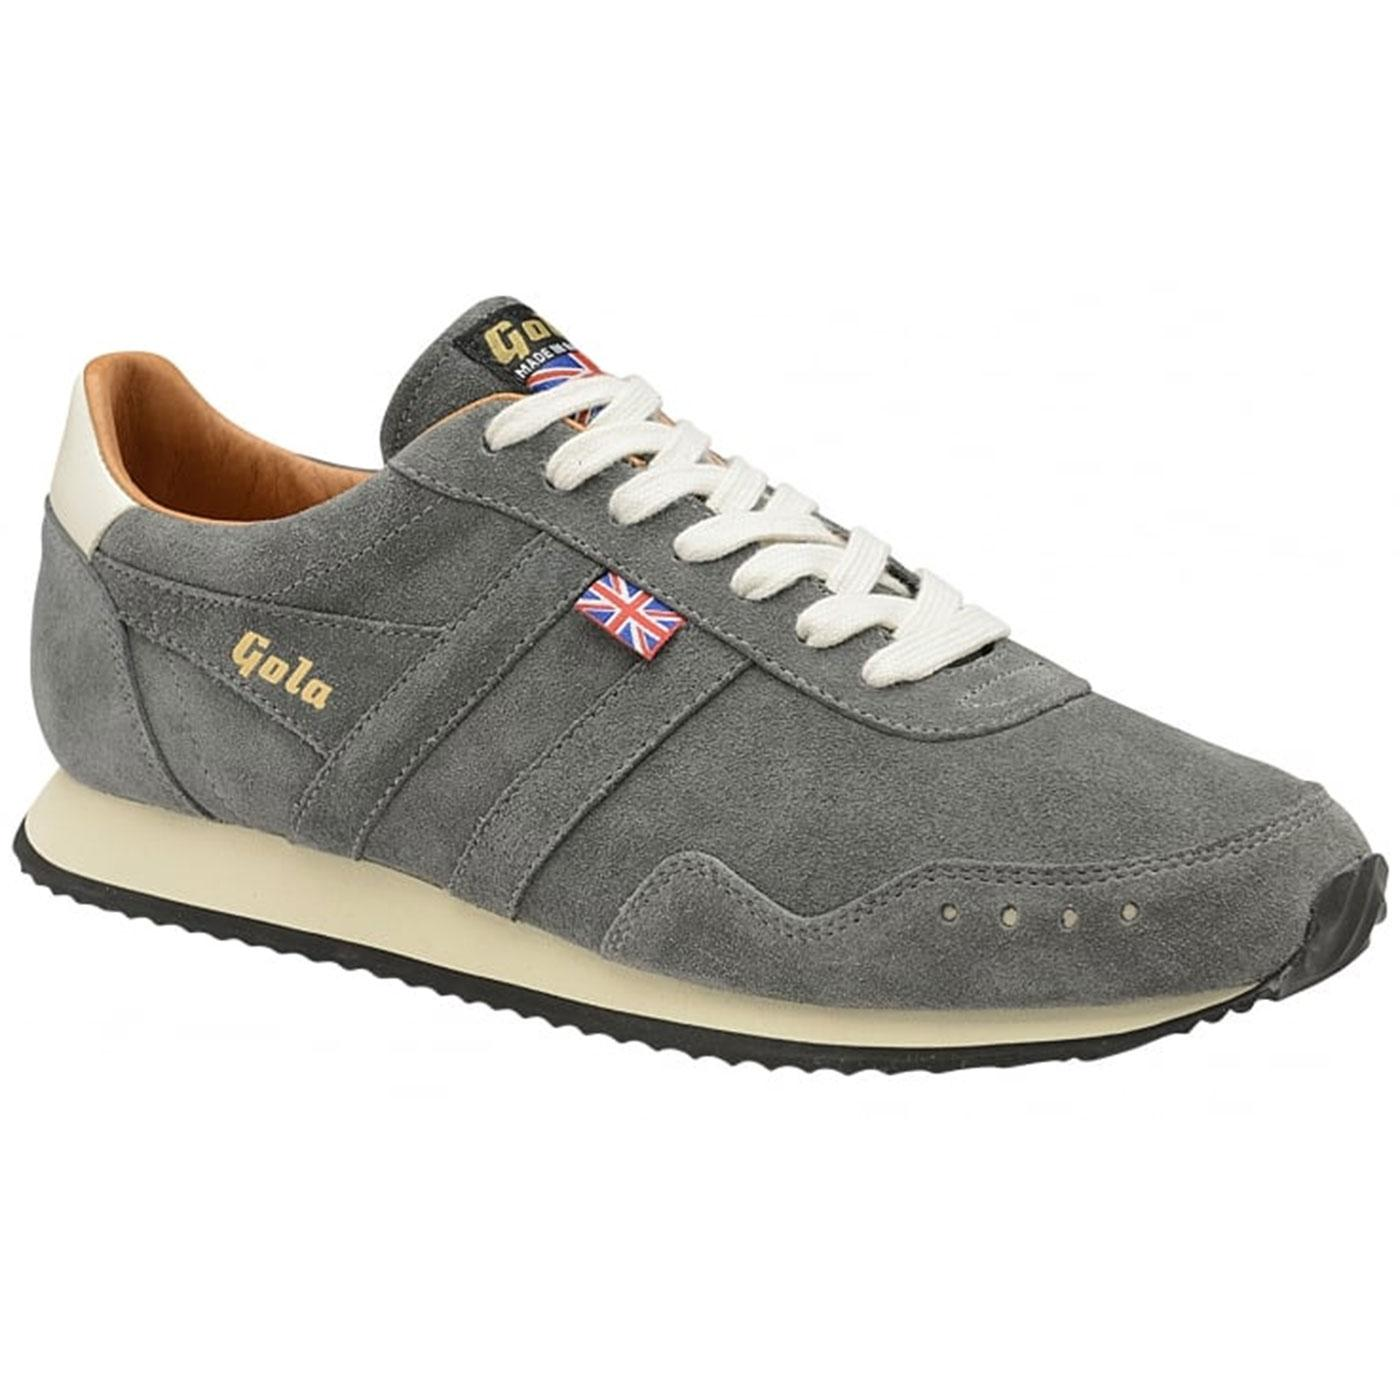 Track Suede GOLA Made in England Retro Trainers G